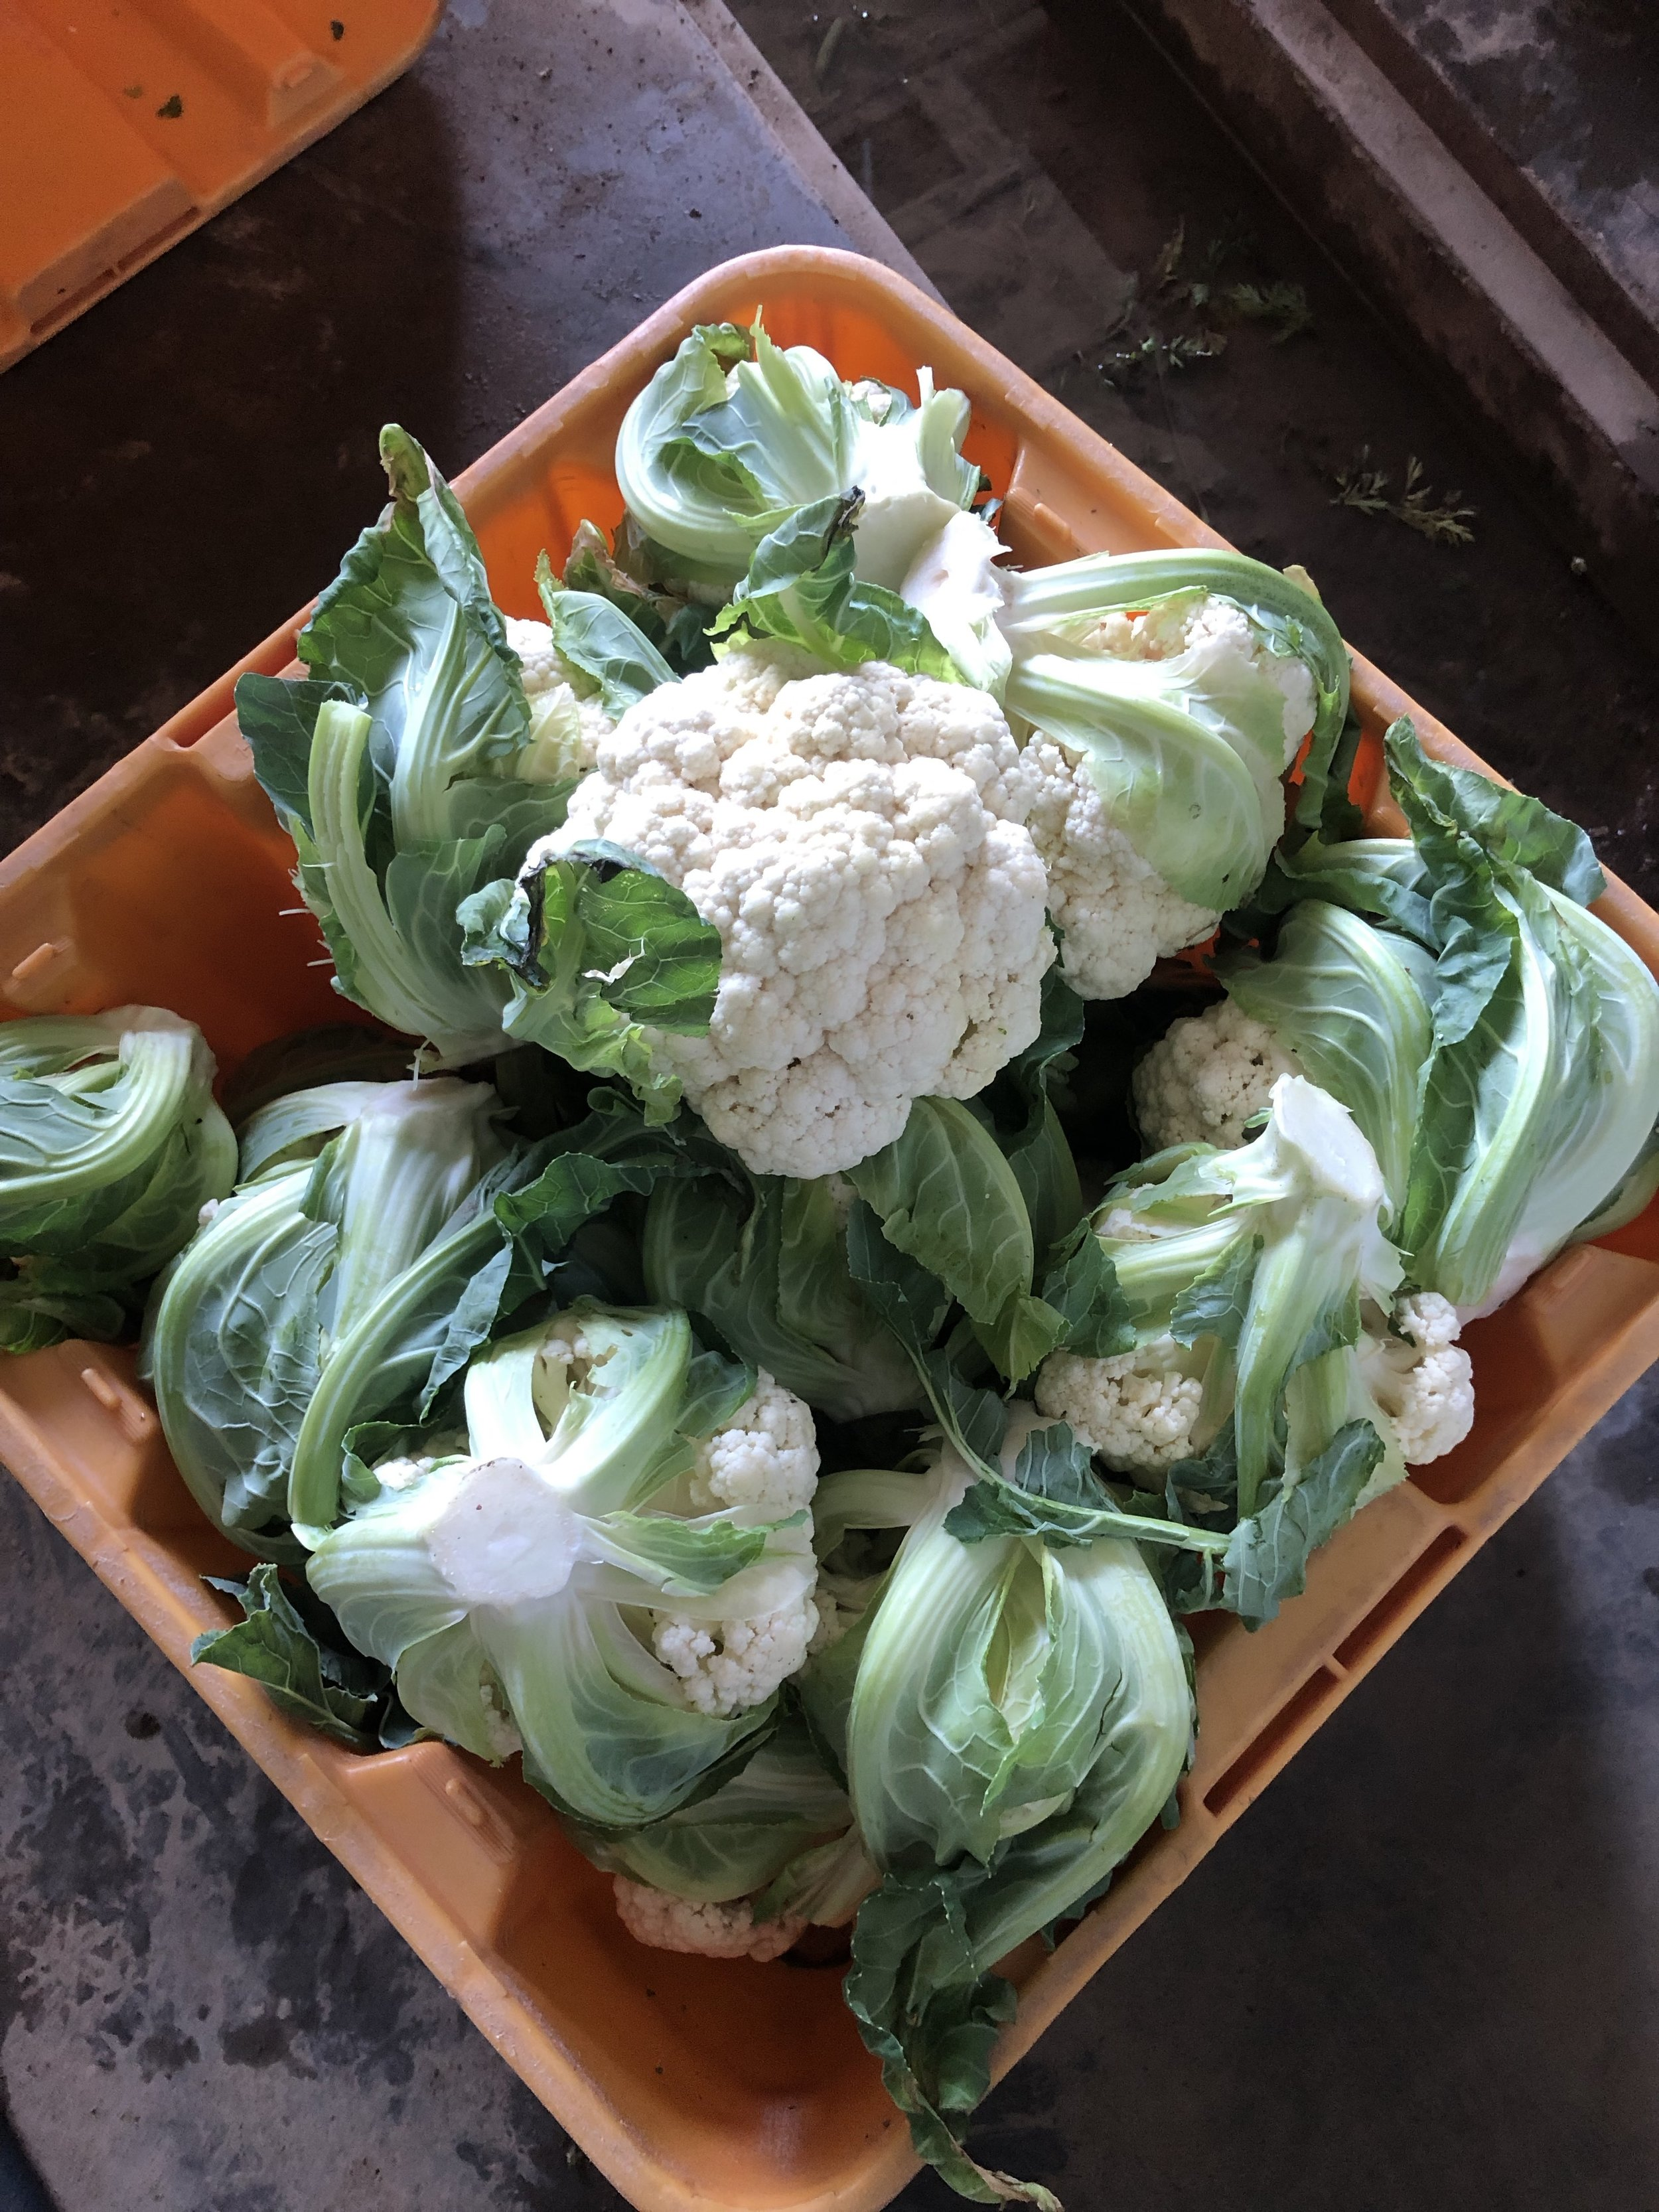 welcome to the box, Cauliflower!